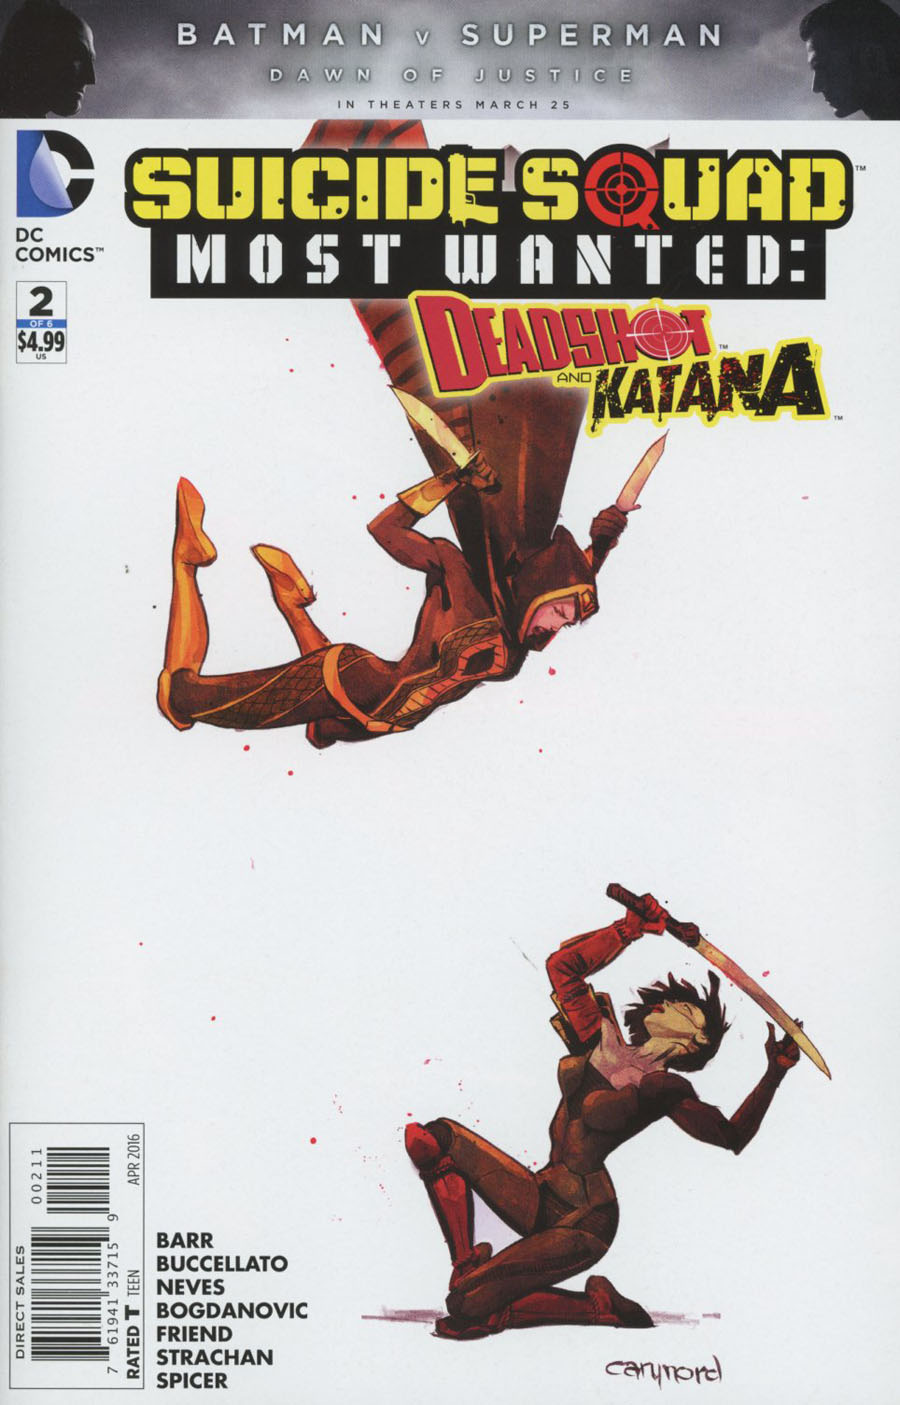 Suicide Squad Most Wanted Deadshot Katana #2